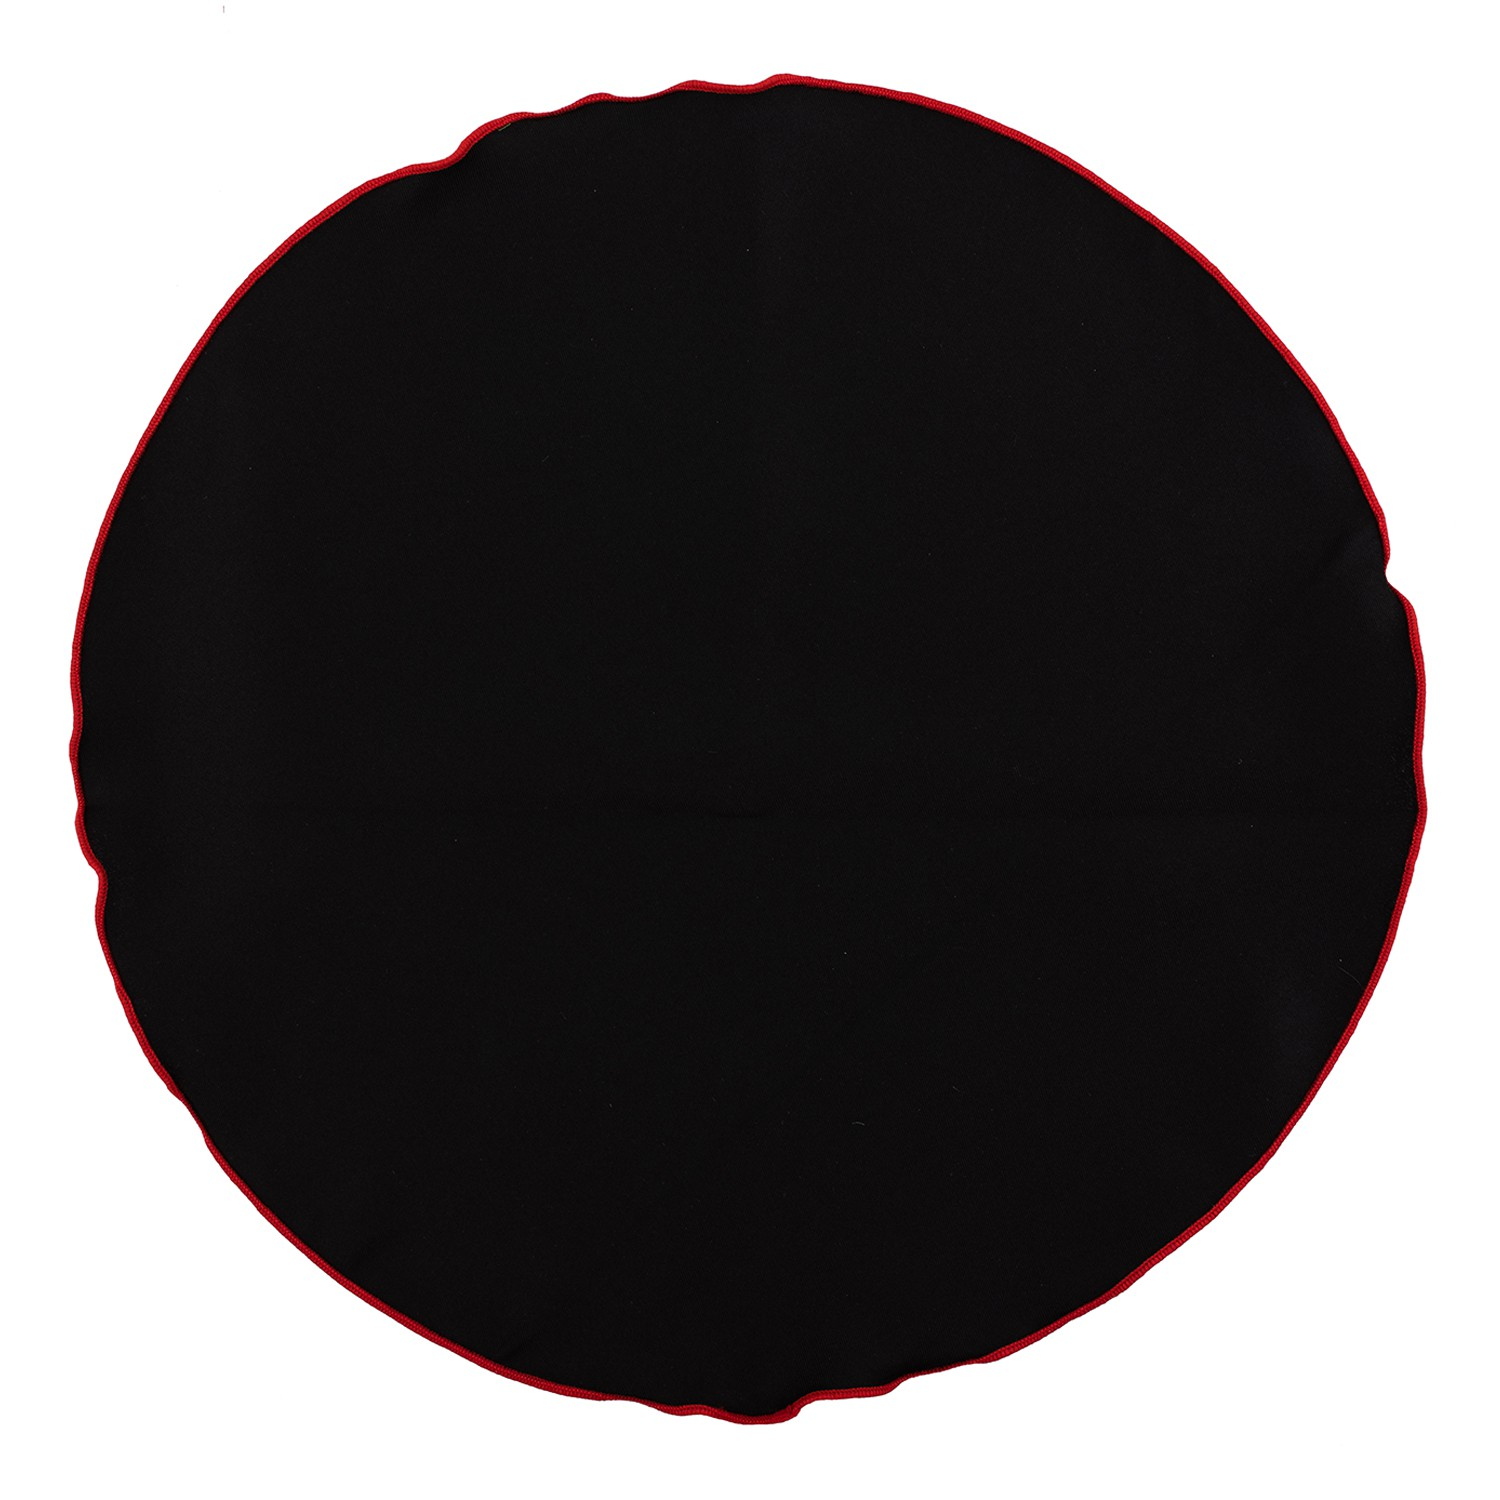 BLACK WITH RED BORDER POCKET CIRCULAR